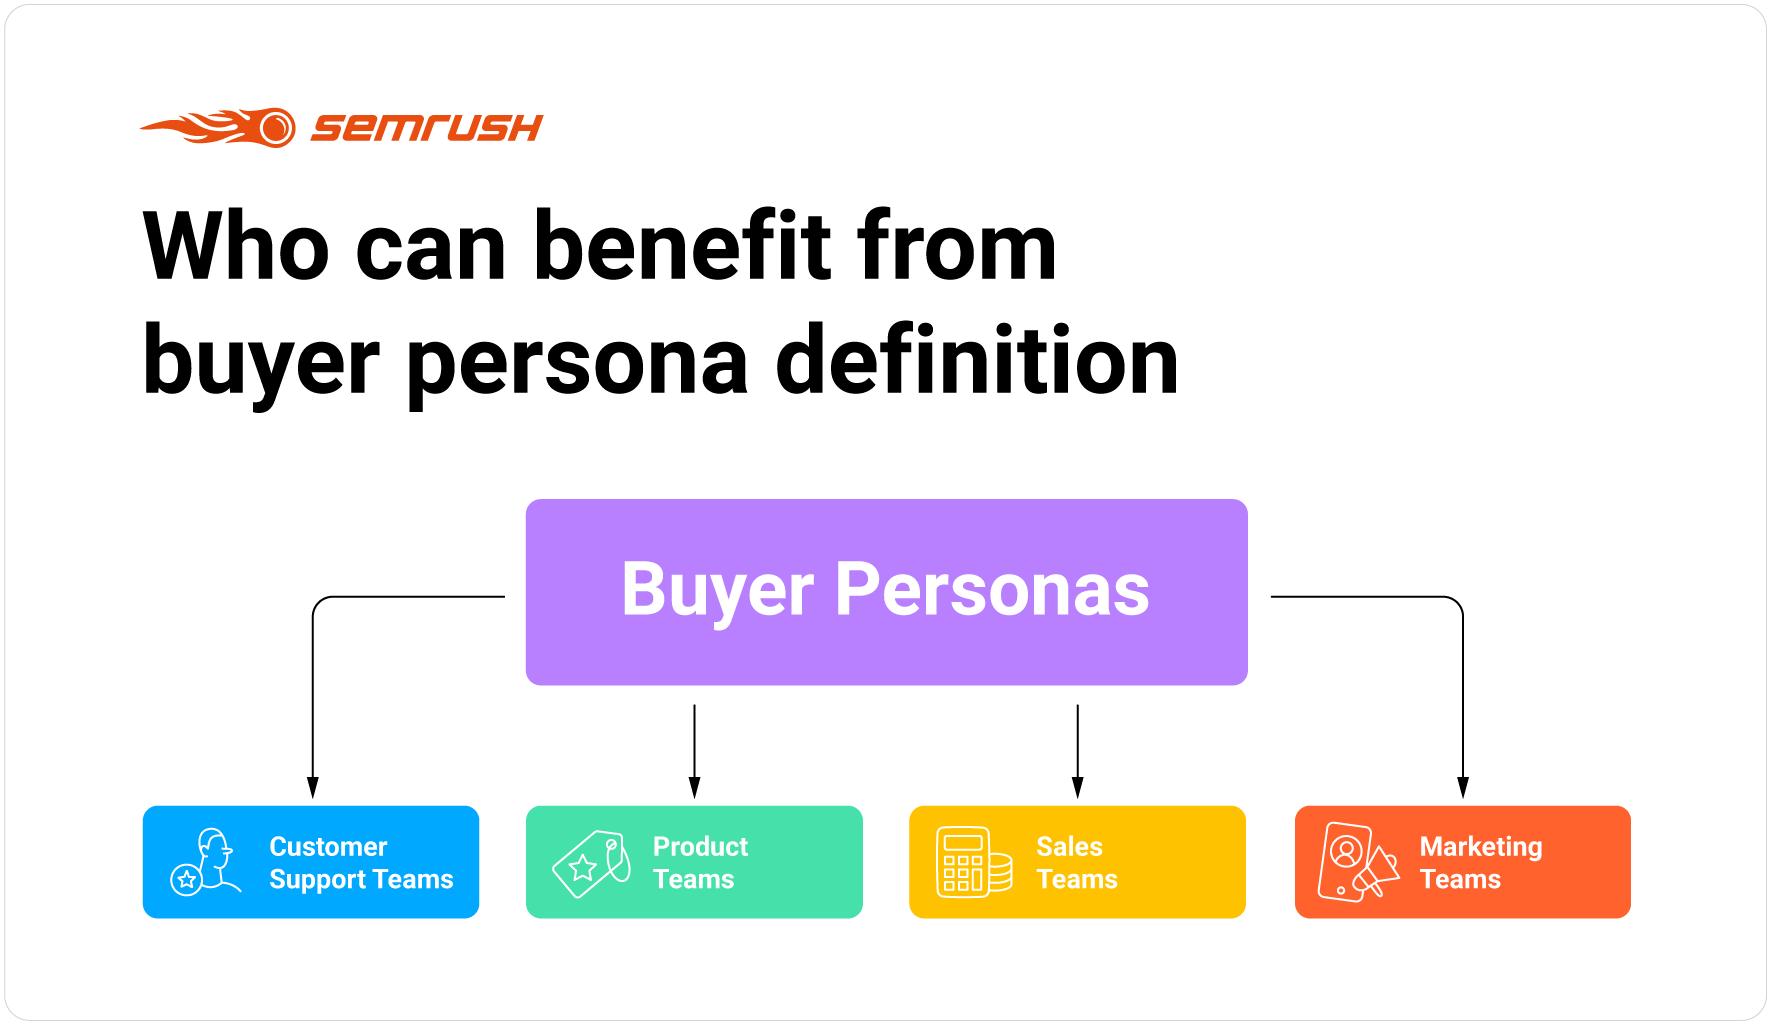 Who can benefit from buyer persona definition